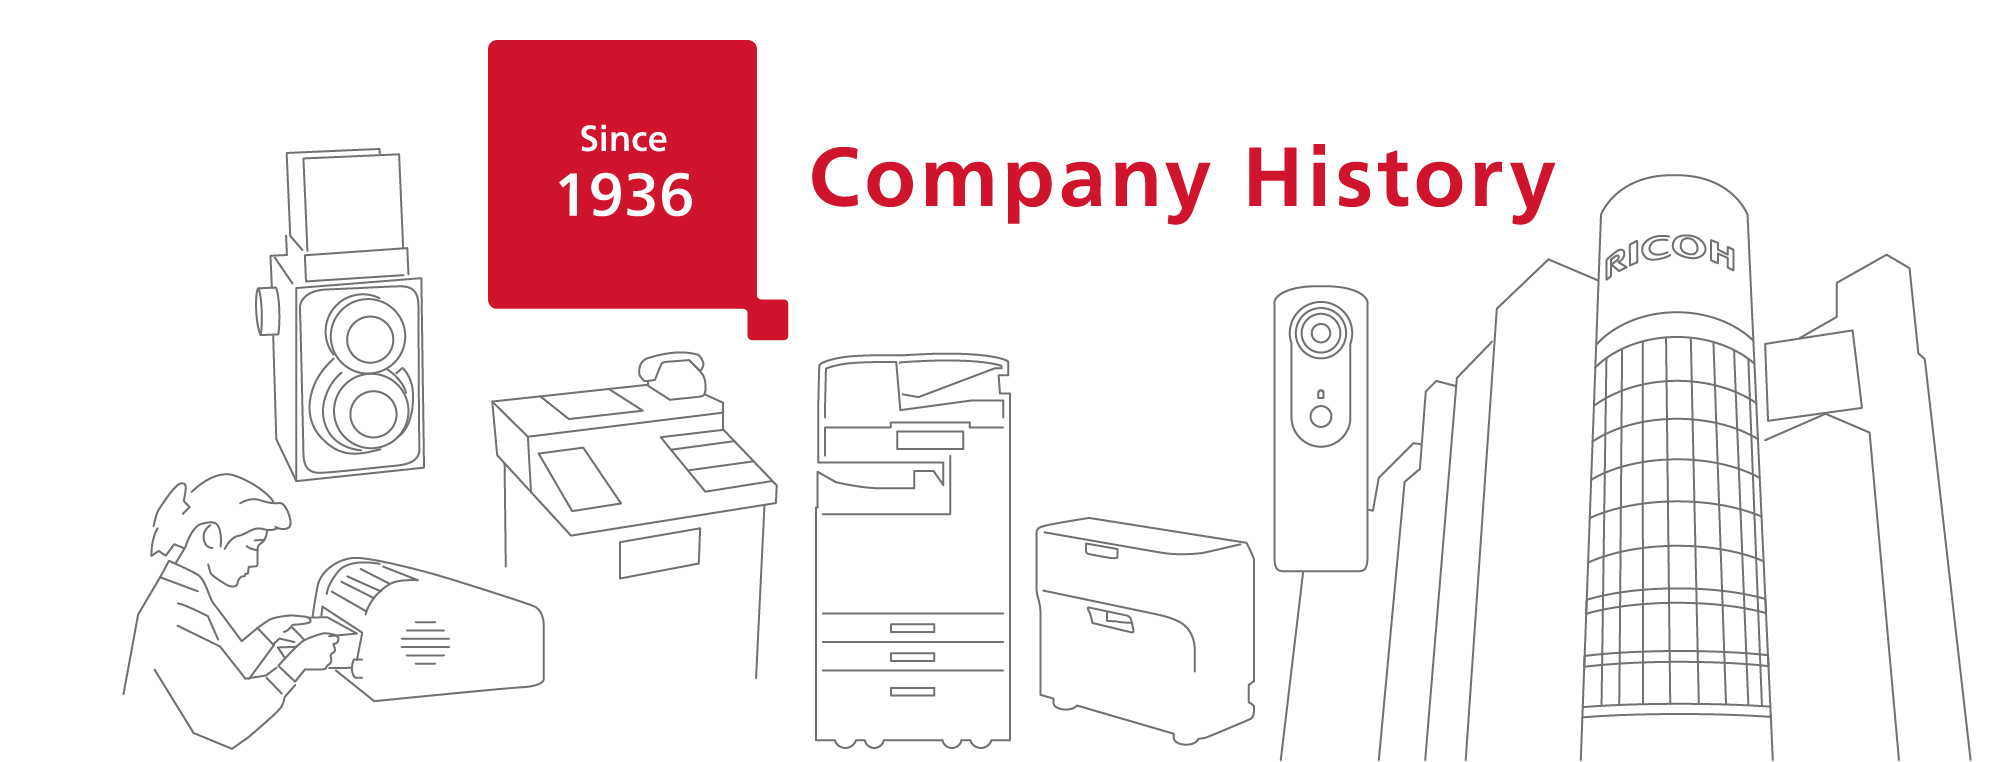 Company History | About Ricoh | Global | Ricoh